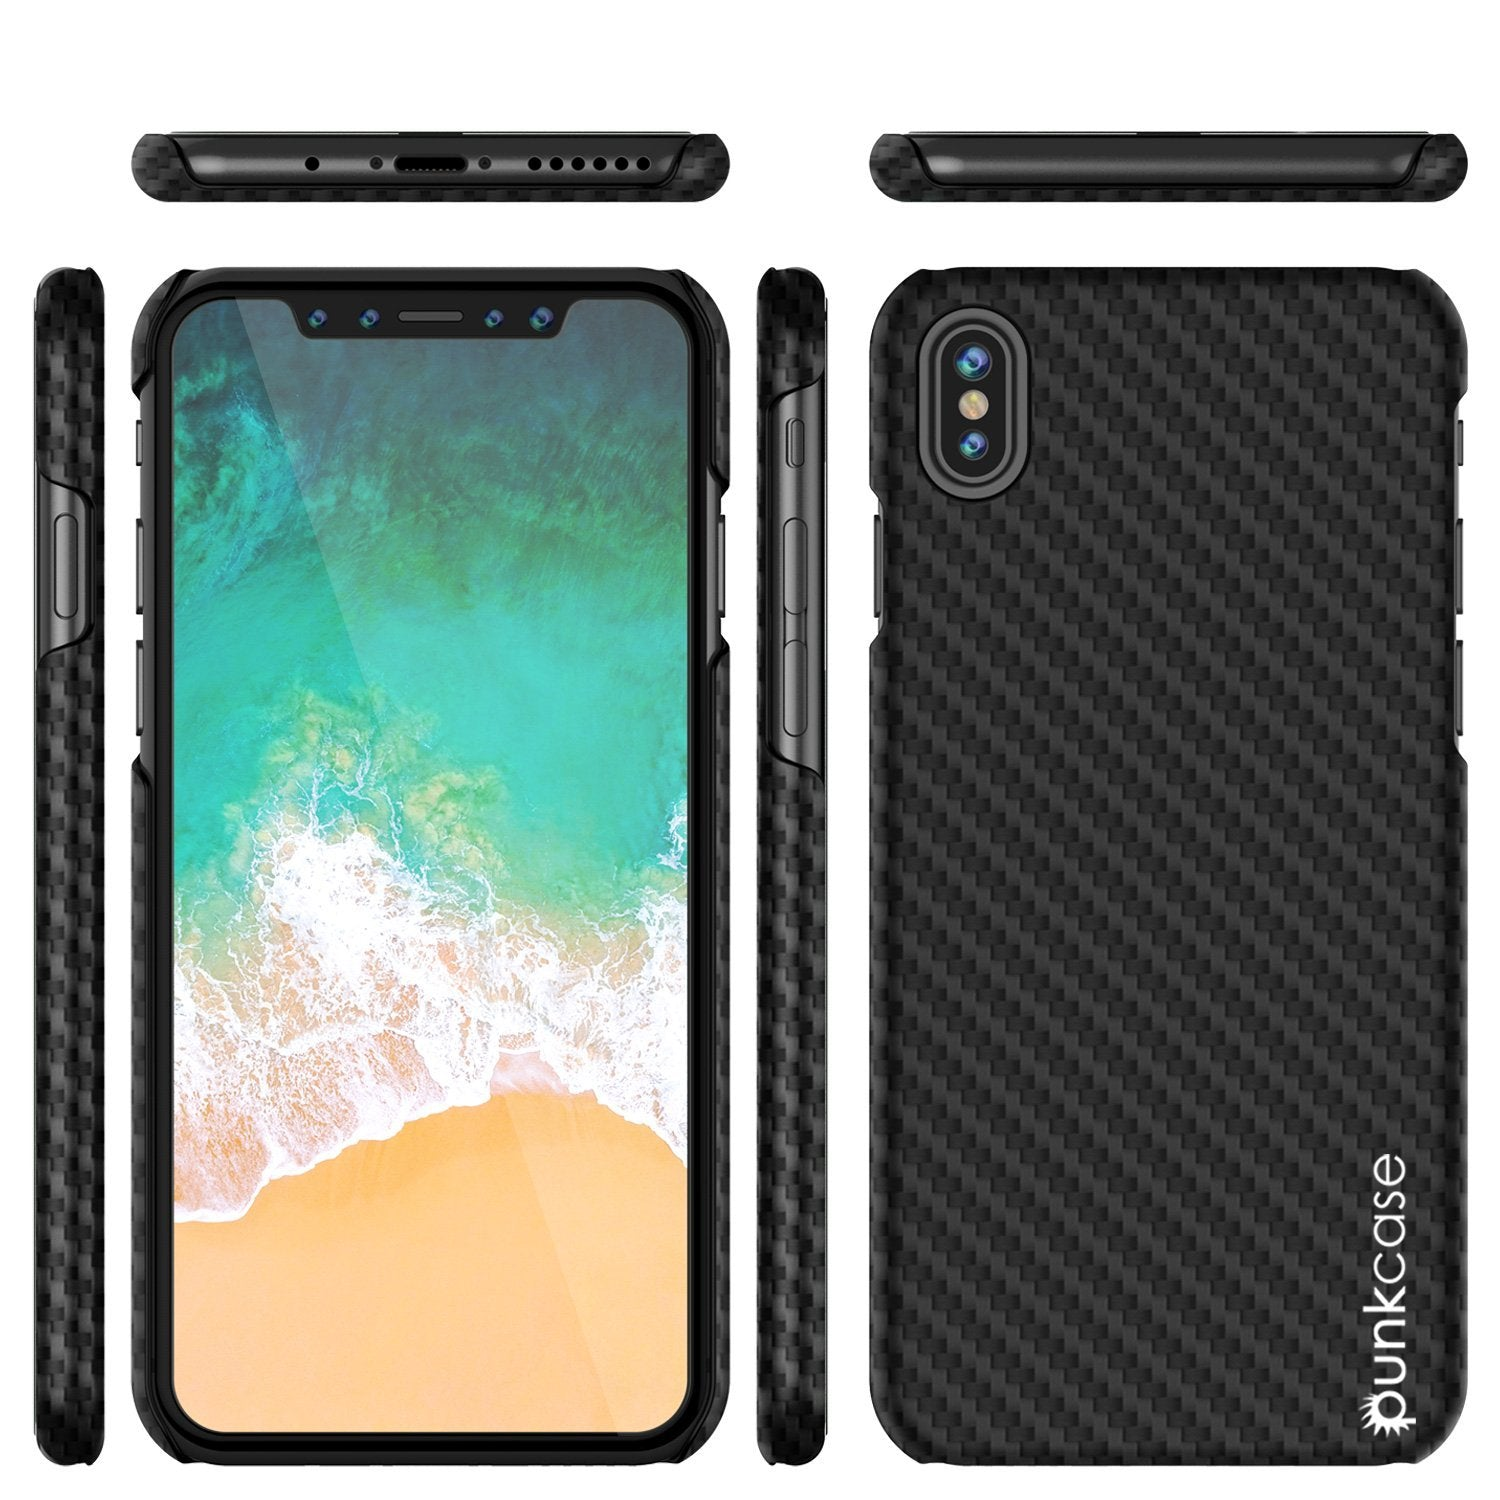 quality design 5afa6 46850 iPhone X Case, Punkcase CarbonShield, Heavy Duty & Ultra Thin 2 Piece